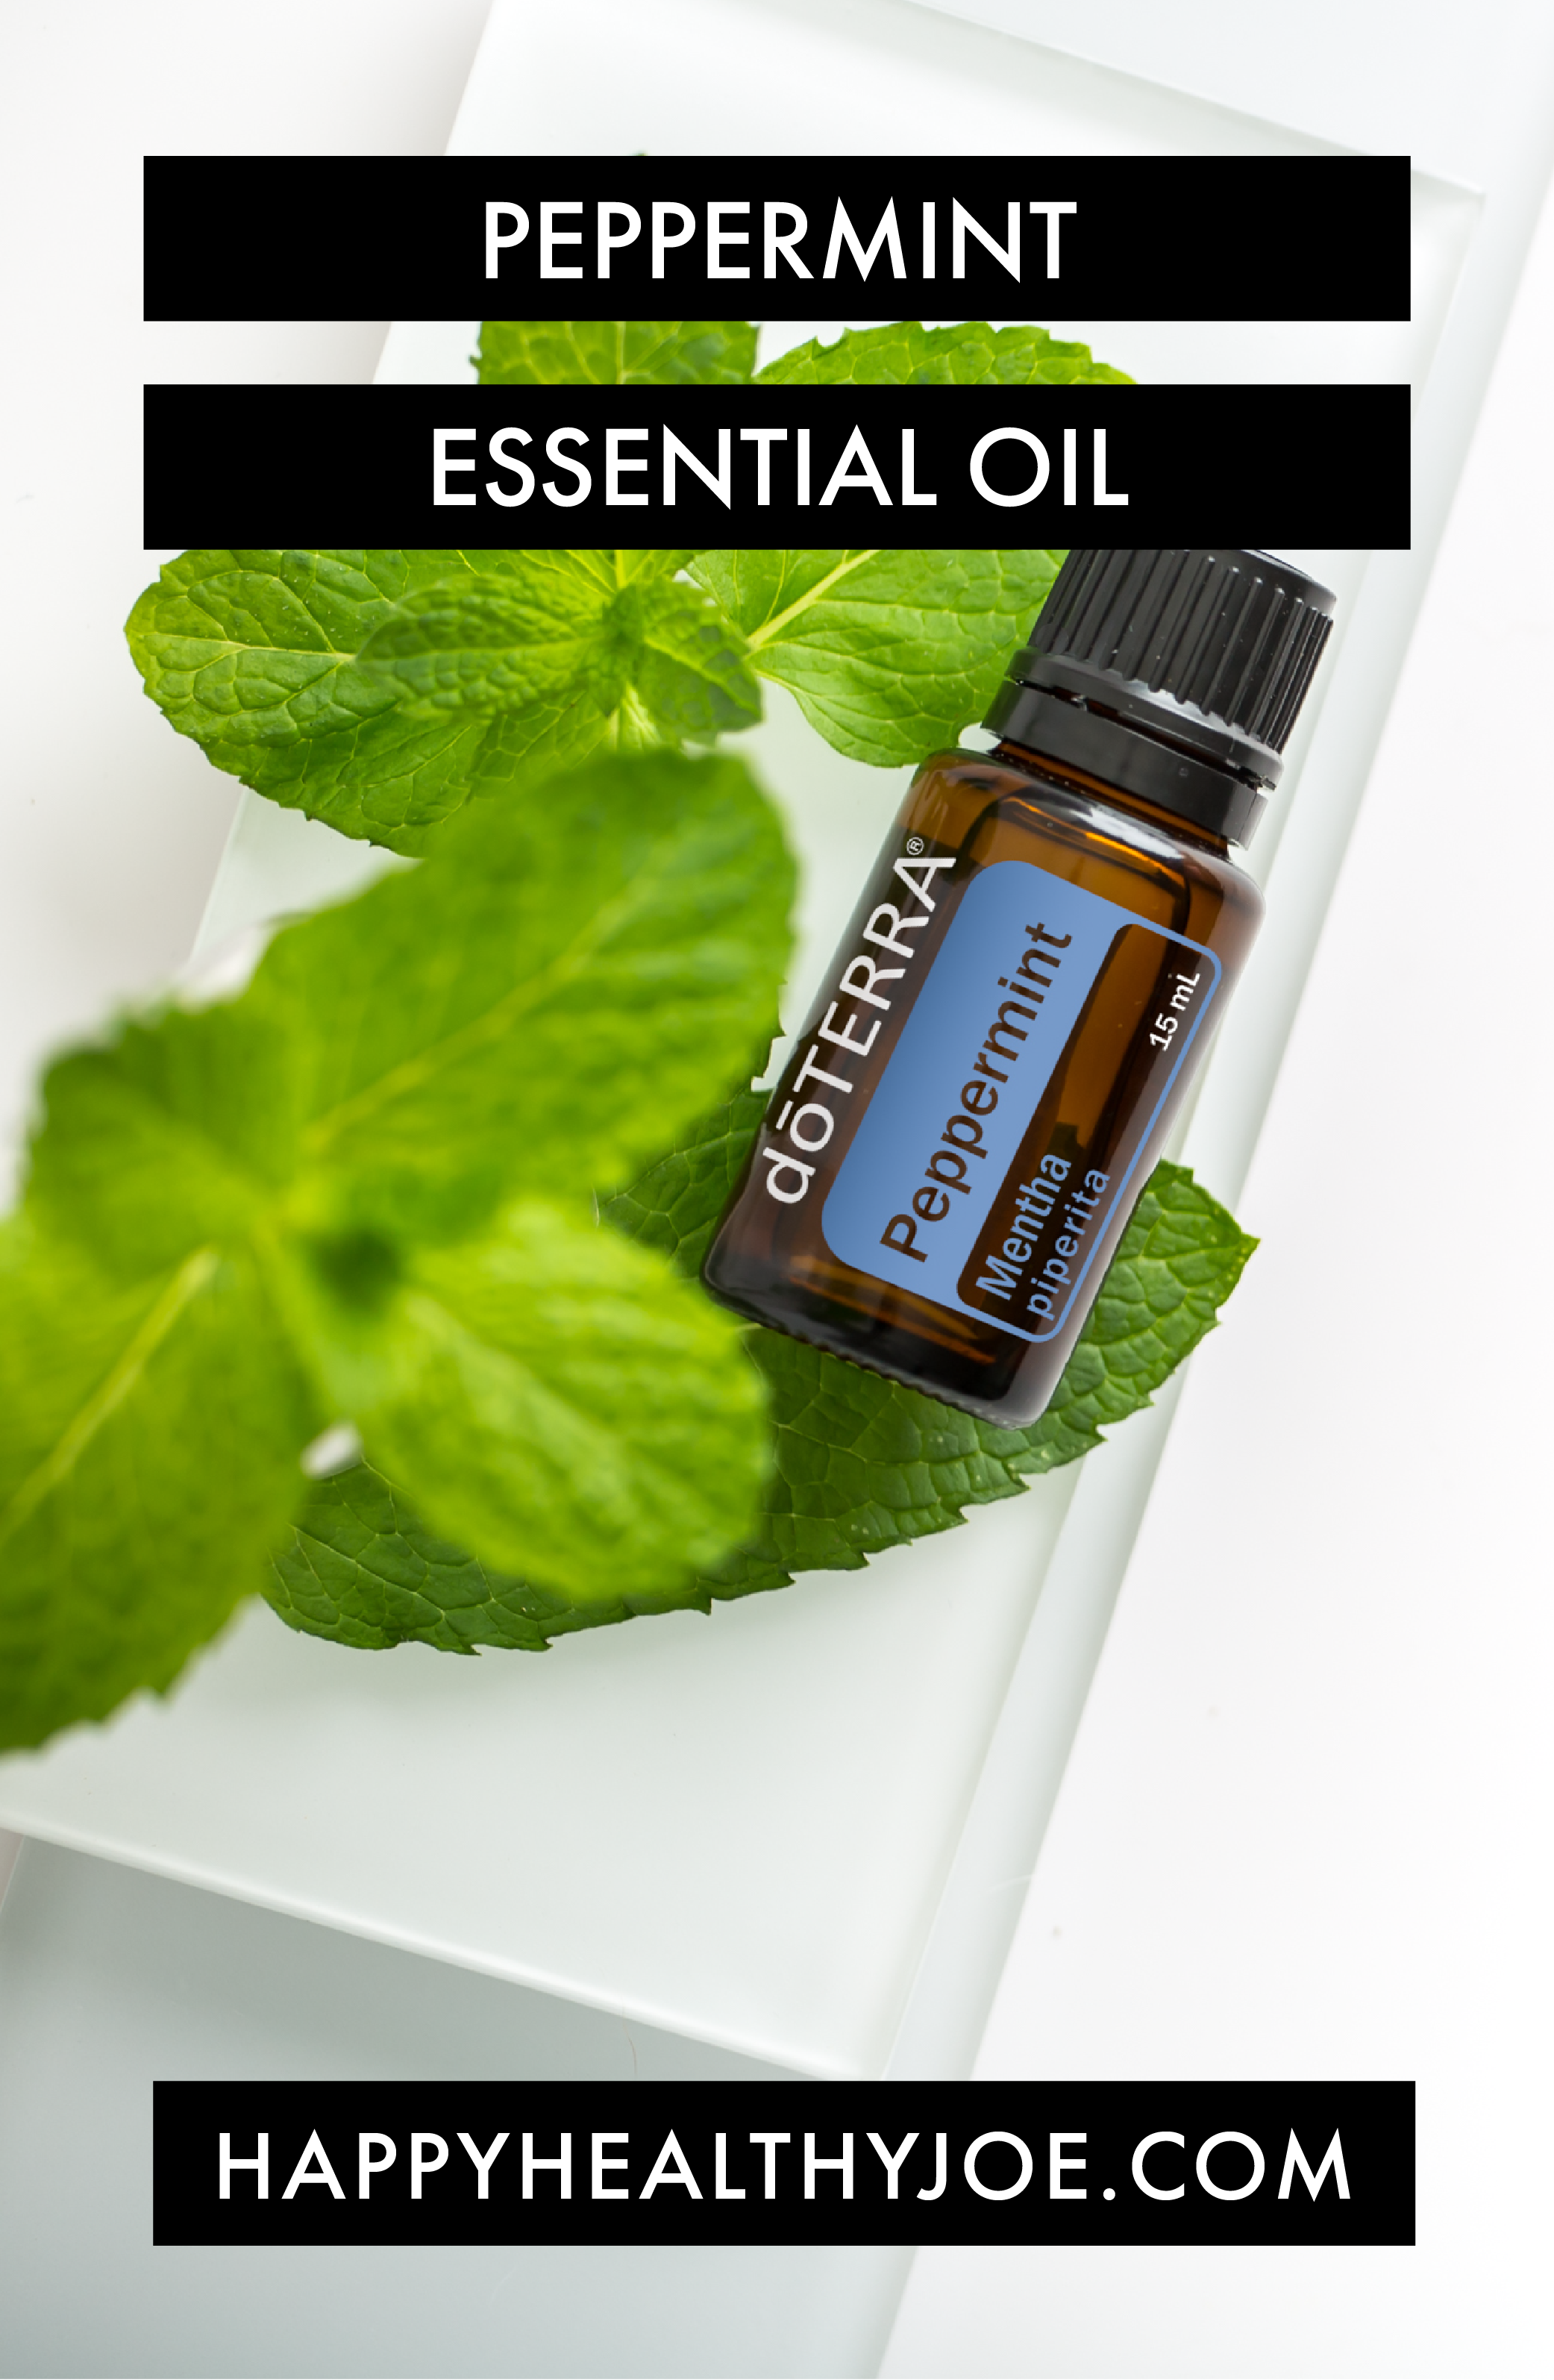 Top doTERRA Essential Oils For Fitness - Peppermint Essential Oil